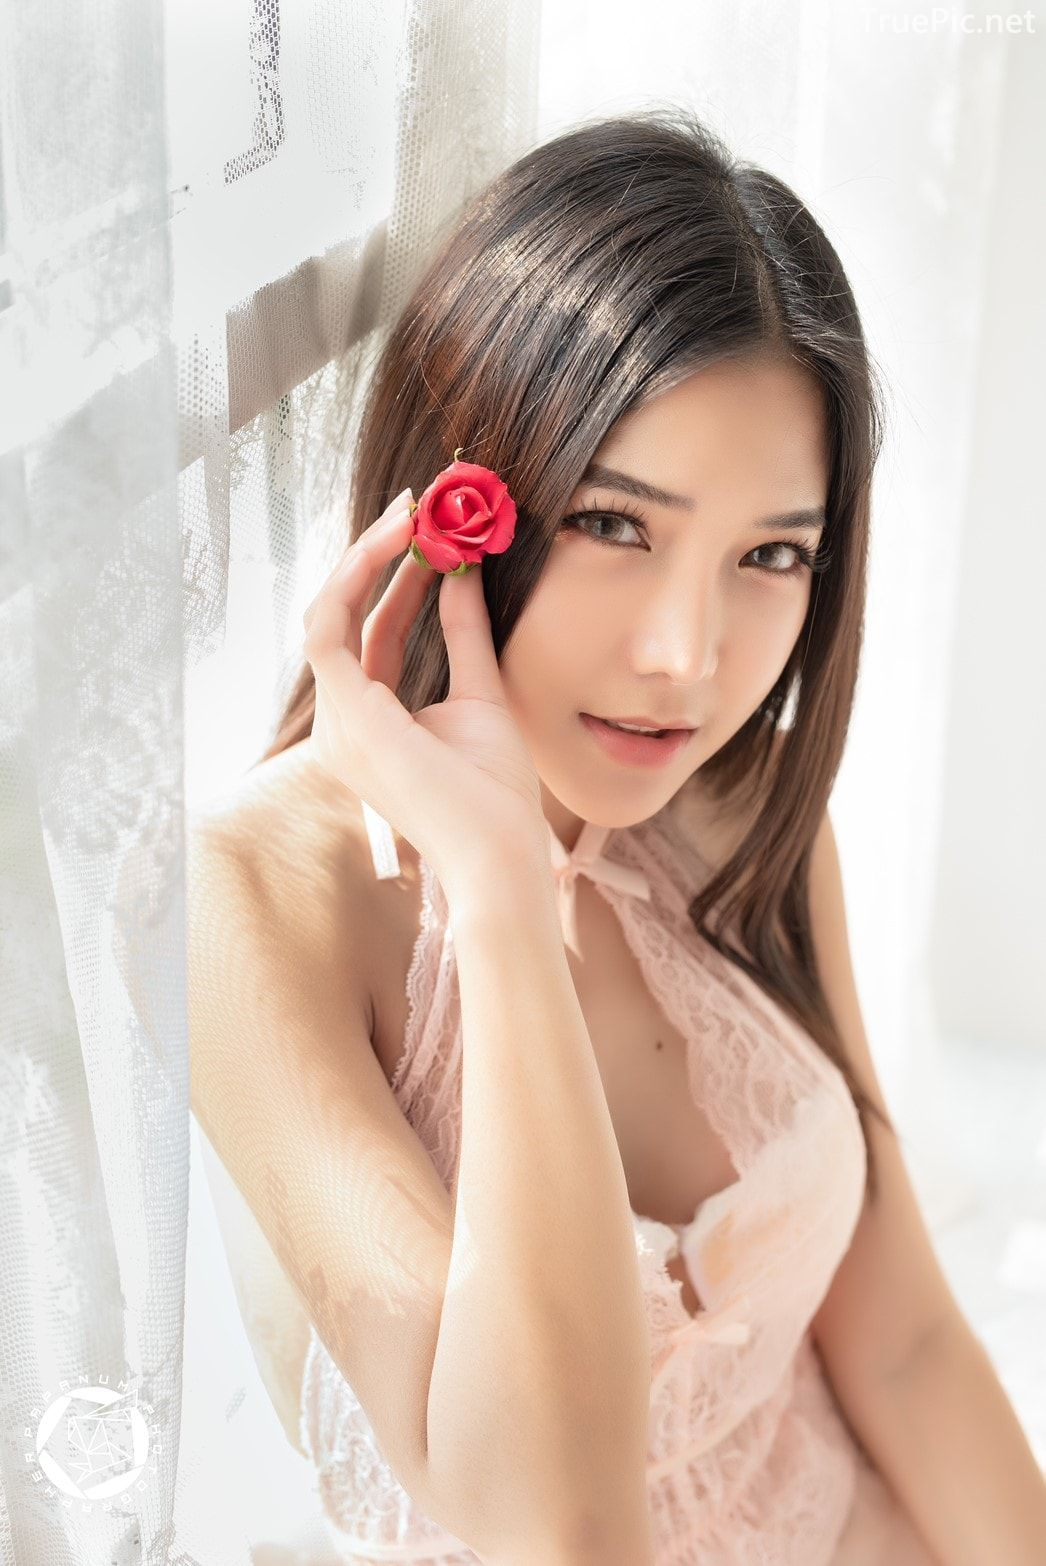 Thailand Model - Phitchamol Srijantanet - Roses for Lovers - TruePic.net - Picture 10